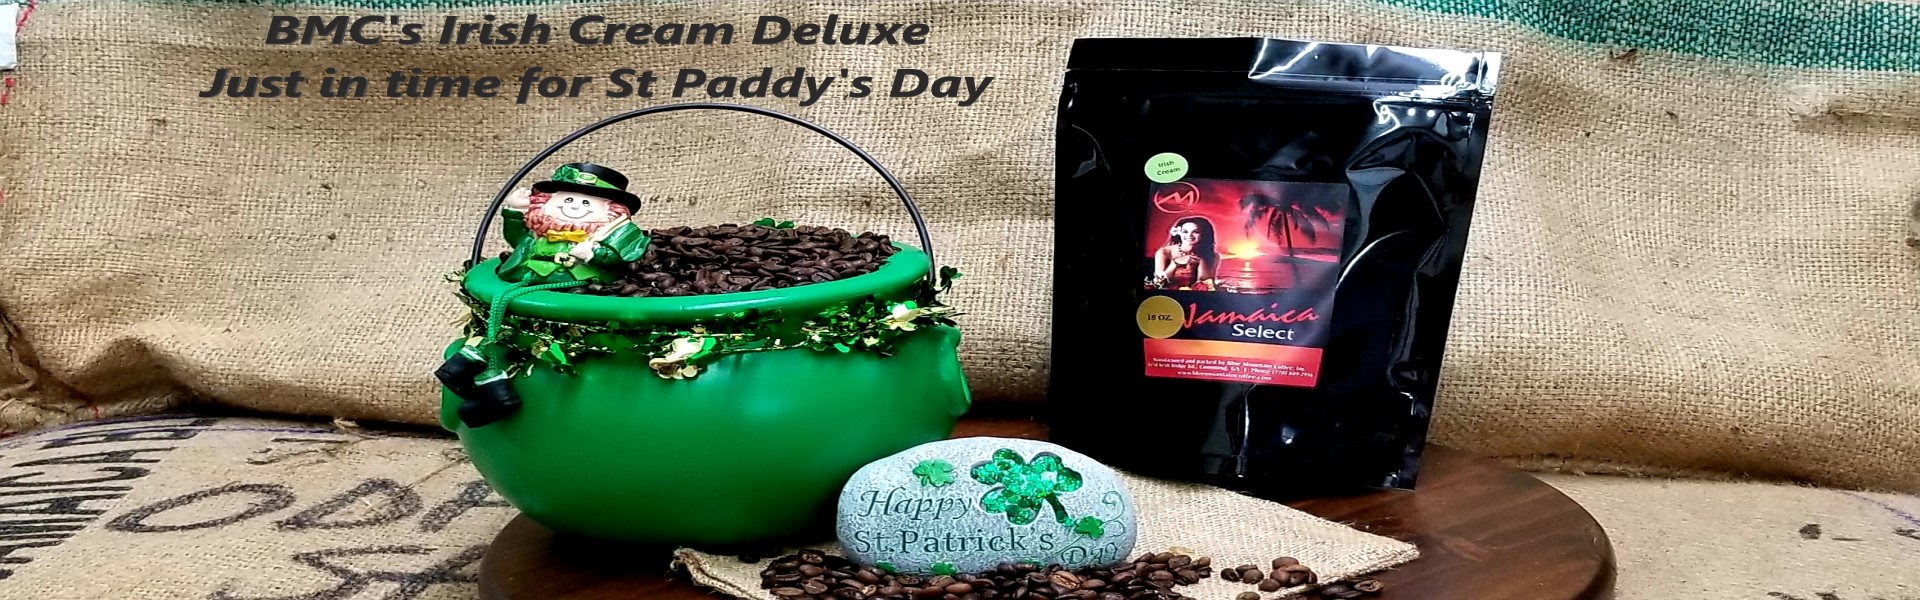 St Paddy's Day Coffee